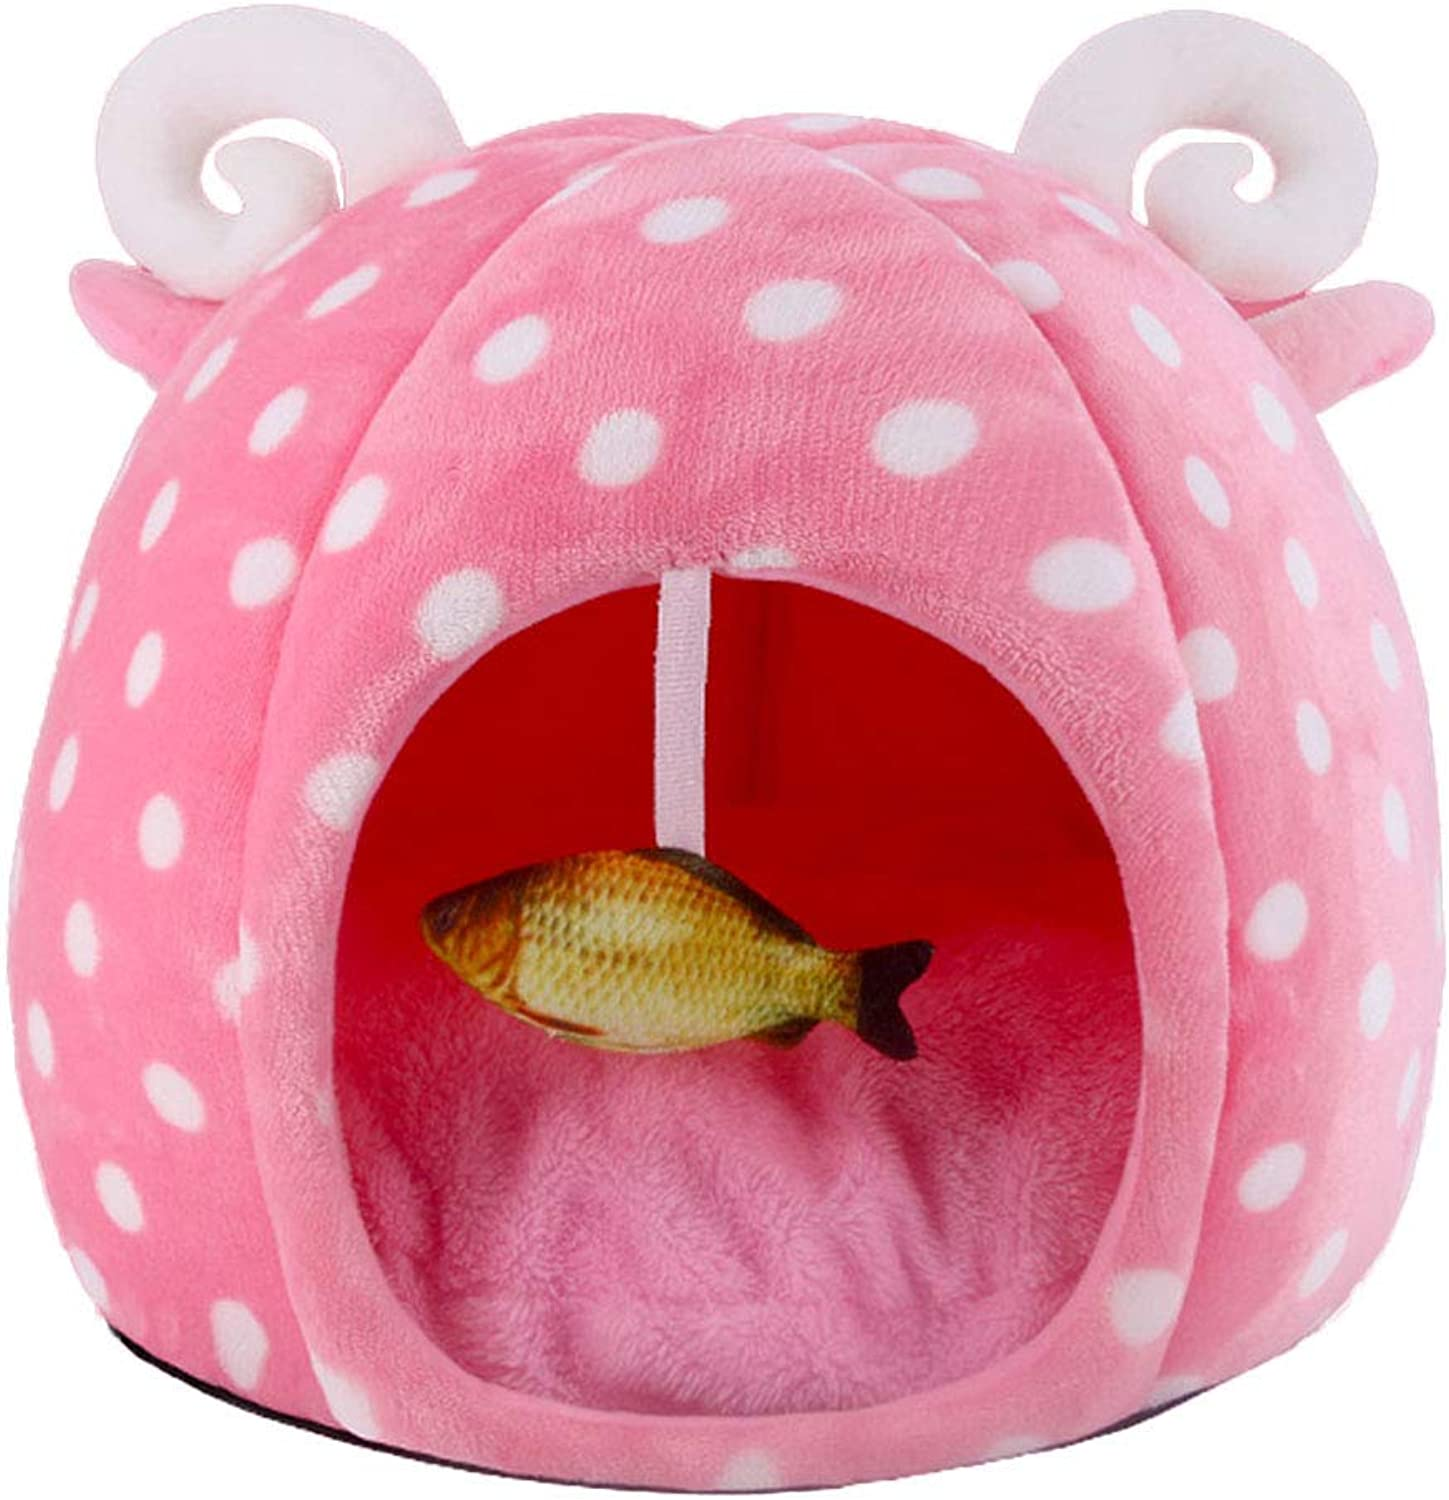 DogHouses Cat Bed Cat House Winter Warm Four Seasons Universal Cat House Dog House Small Dog Kennel Dog Bed Gift (color   Pink, Size   52  48  39cm)